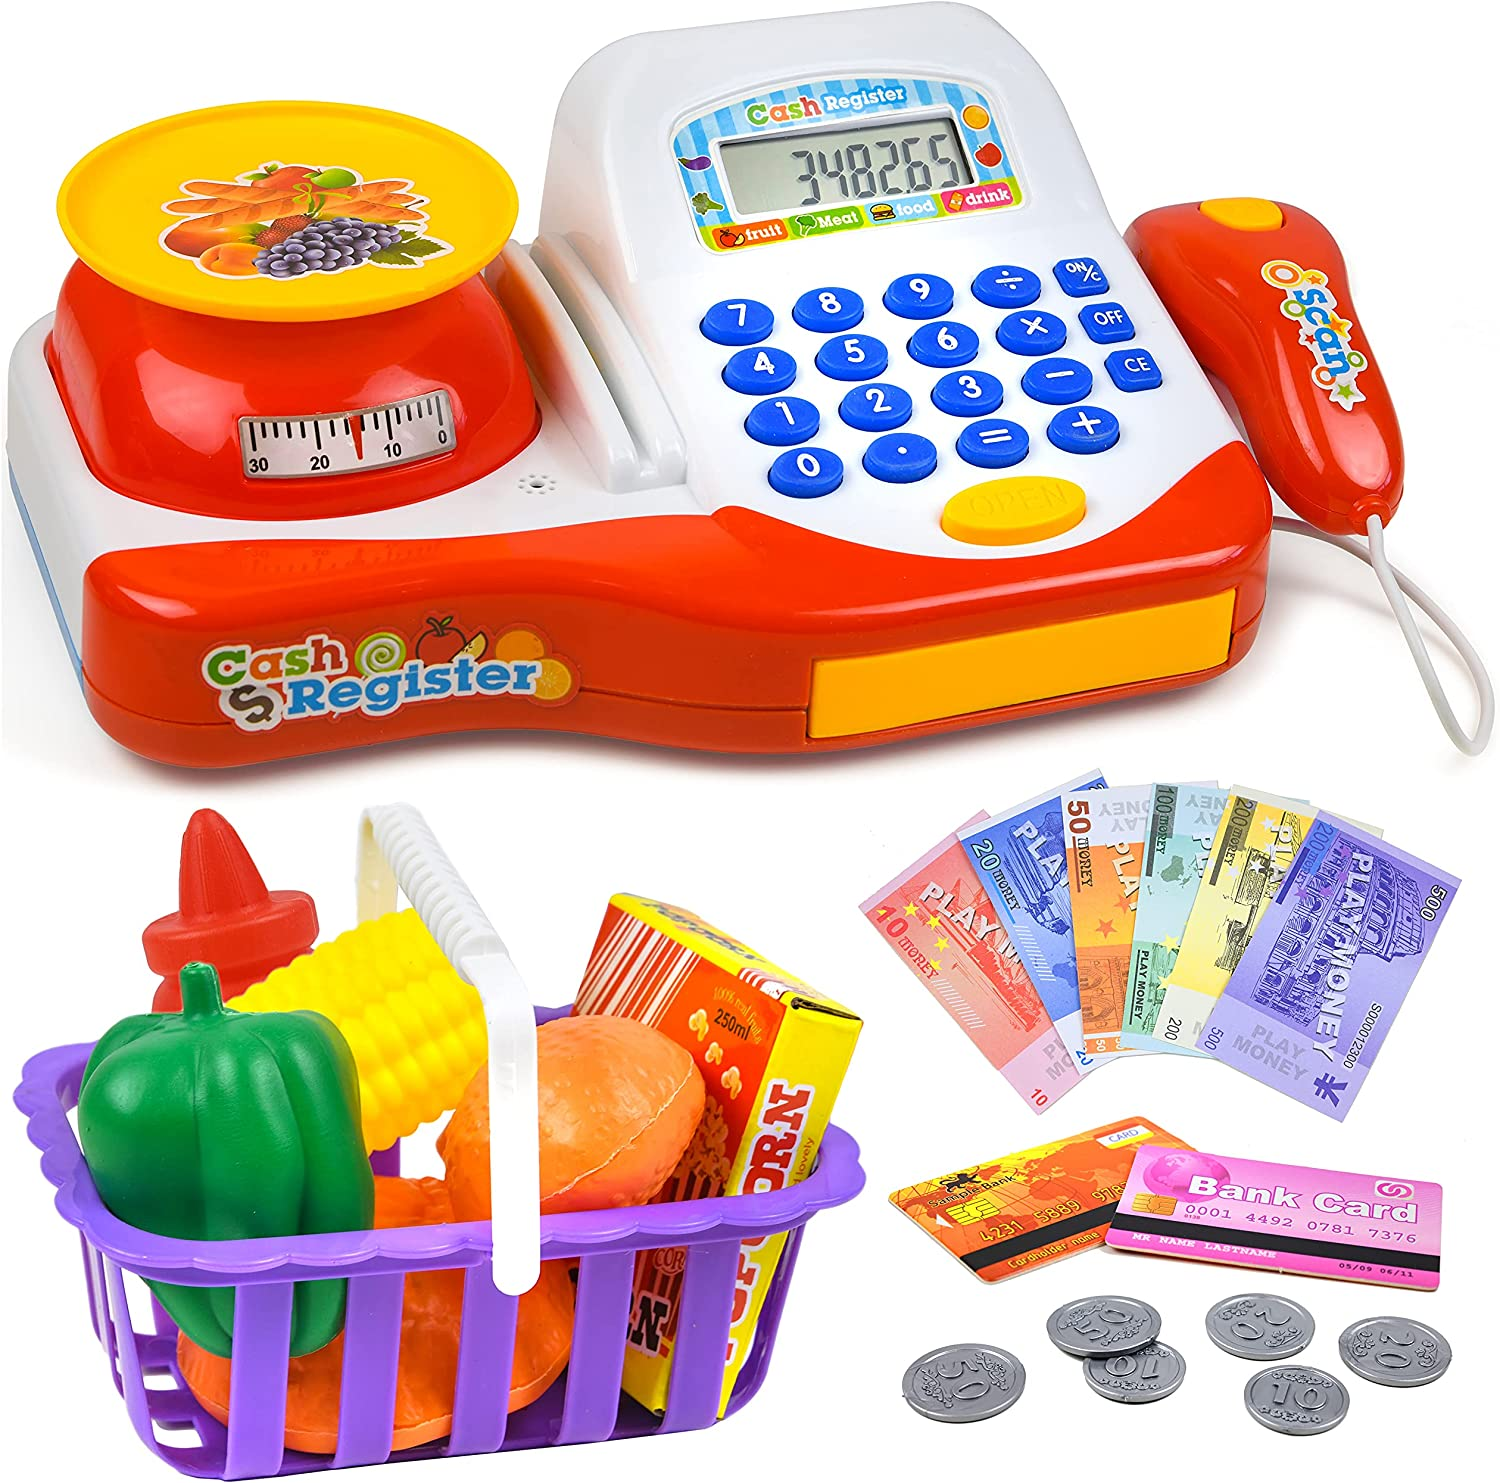 Play Brainy Play Cash Register for Kids with Scanner, Calculator, Play Food with Scale, Shopping Basket, Fake Paper Money and Coins, and Credit Cards, Interactive Early Learning Playset